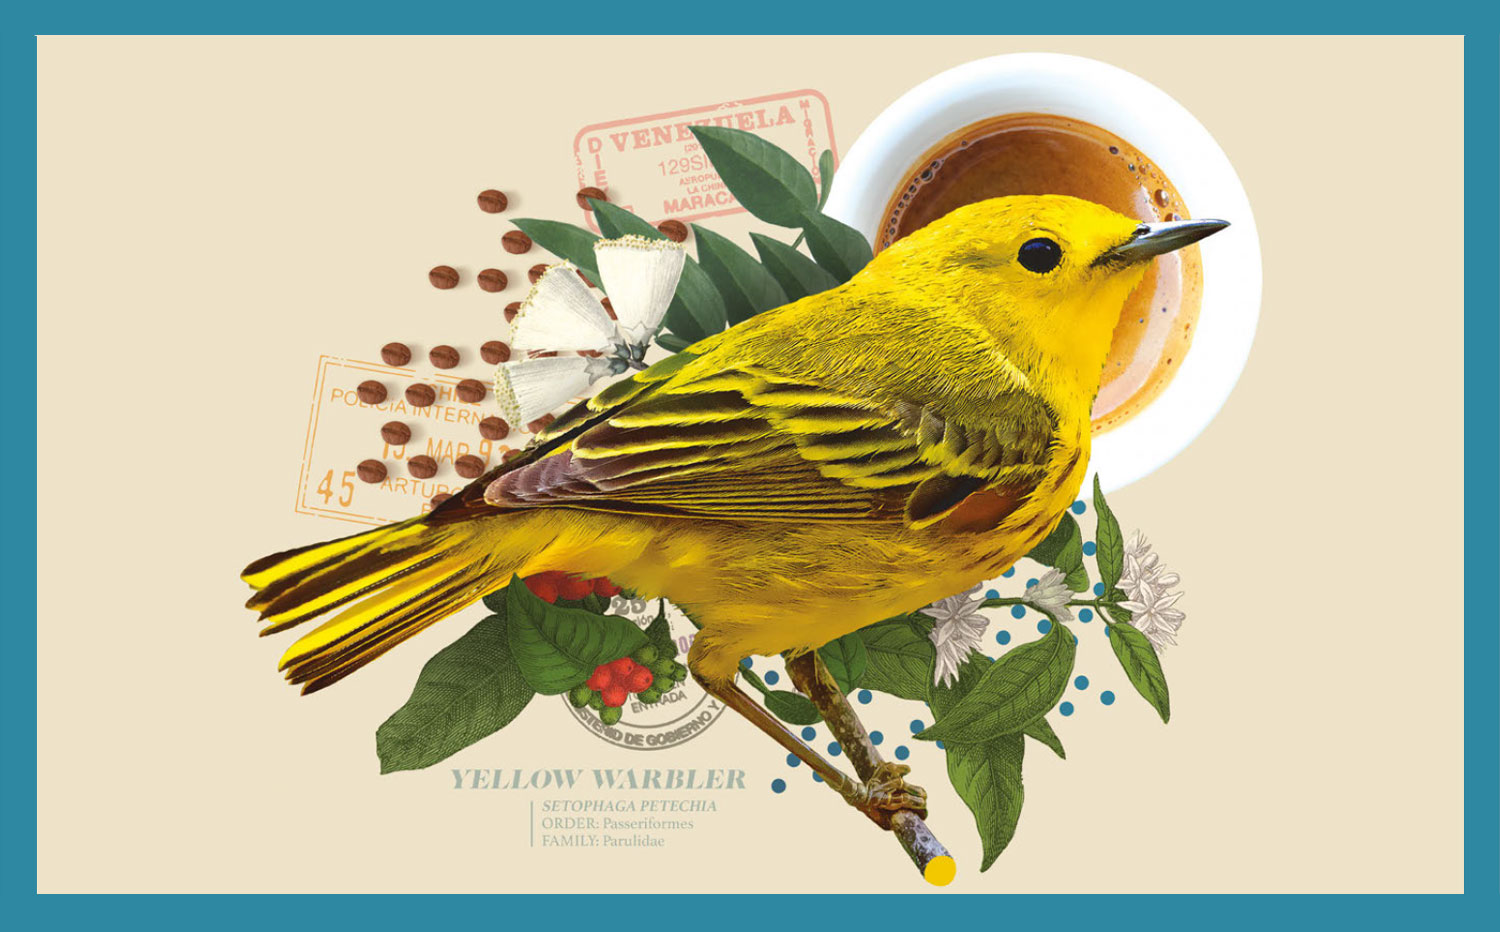 5. Drink Coffee That's Good for Birds